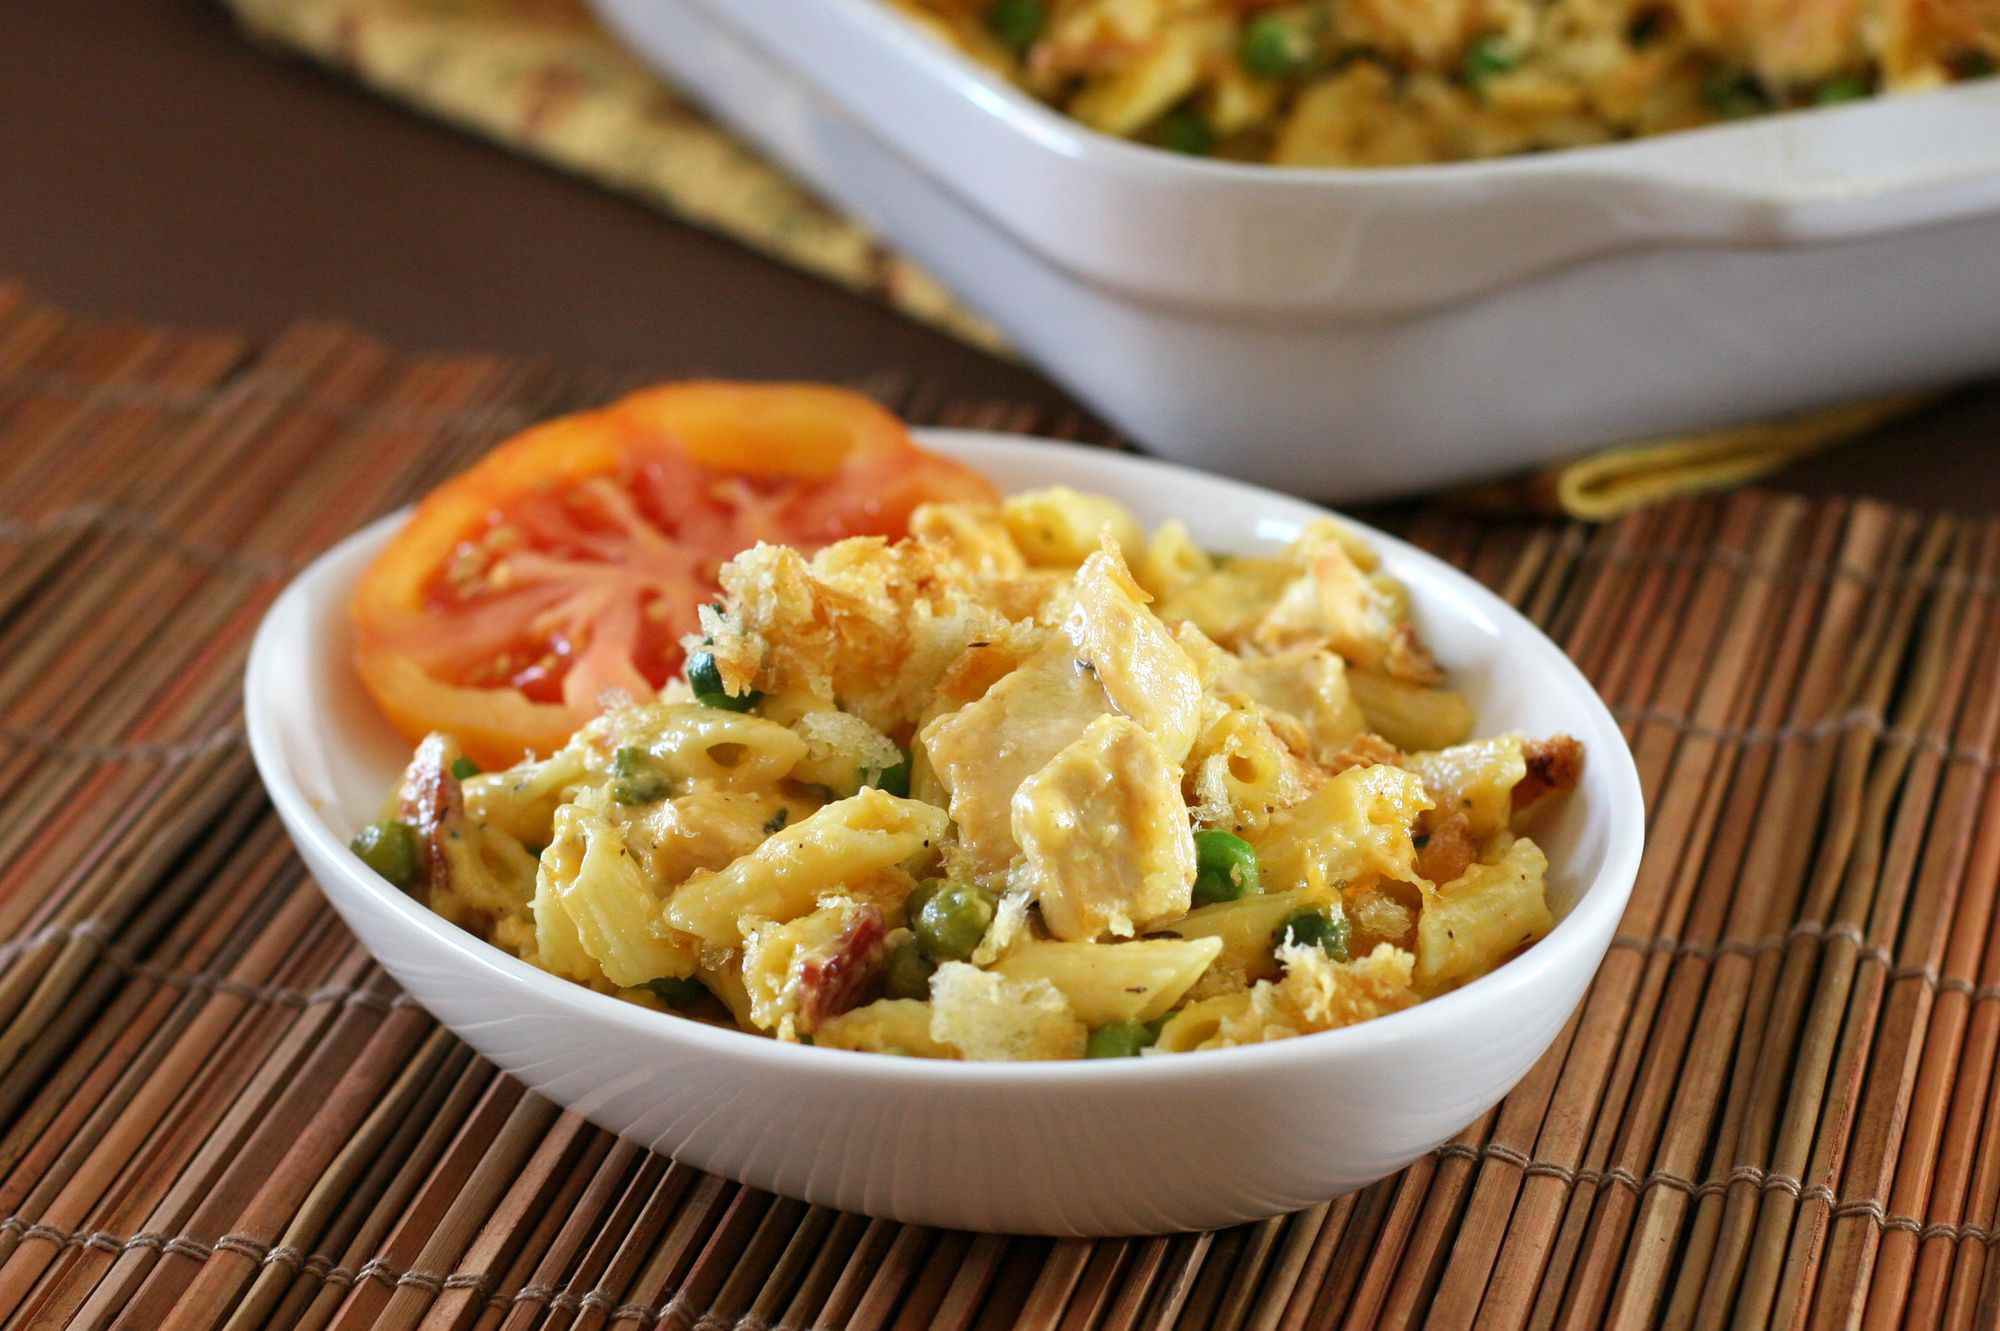 Chicken, Cheddar, and Bacon Casserole